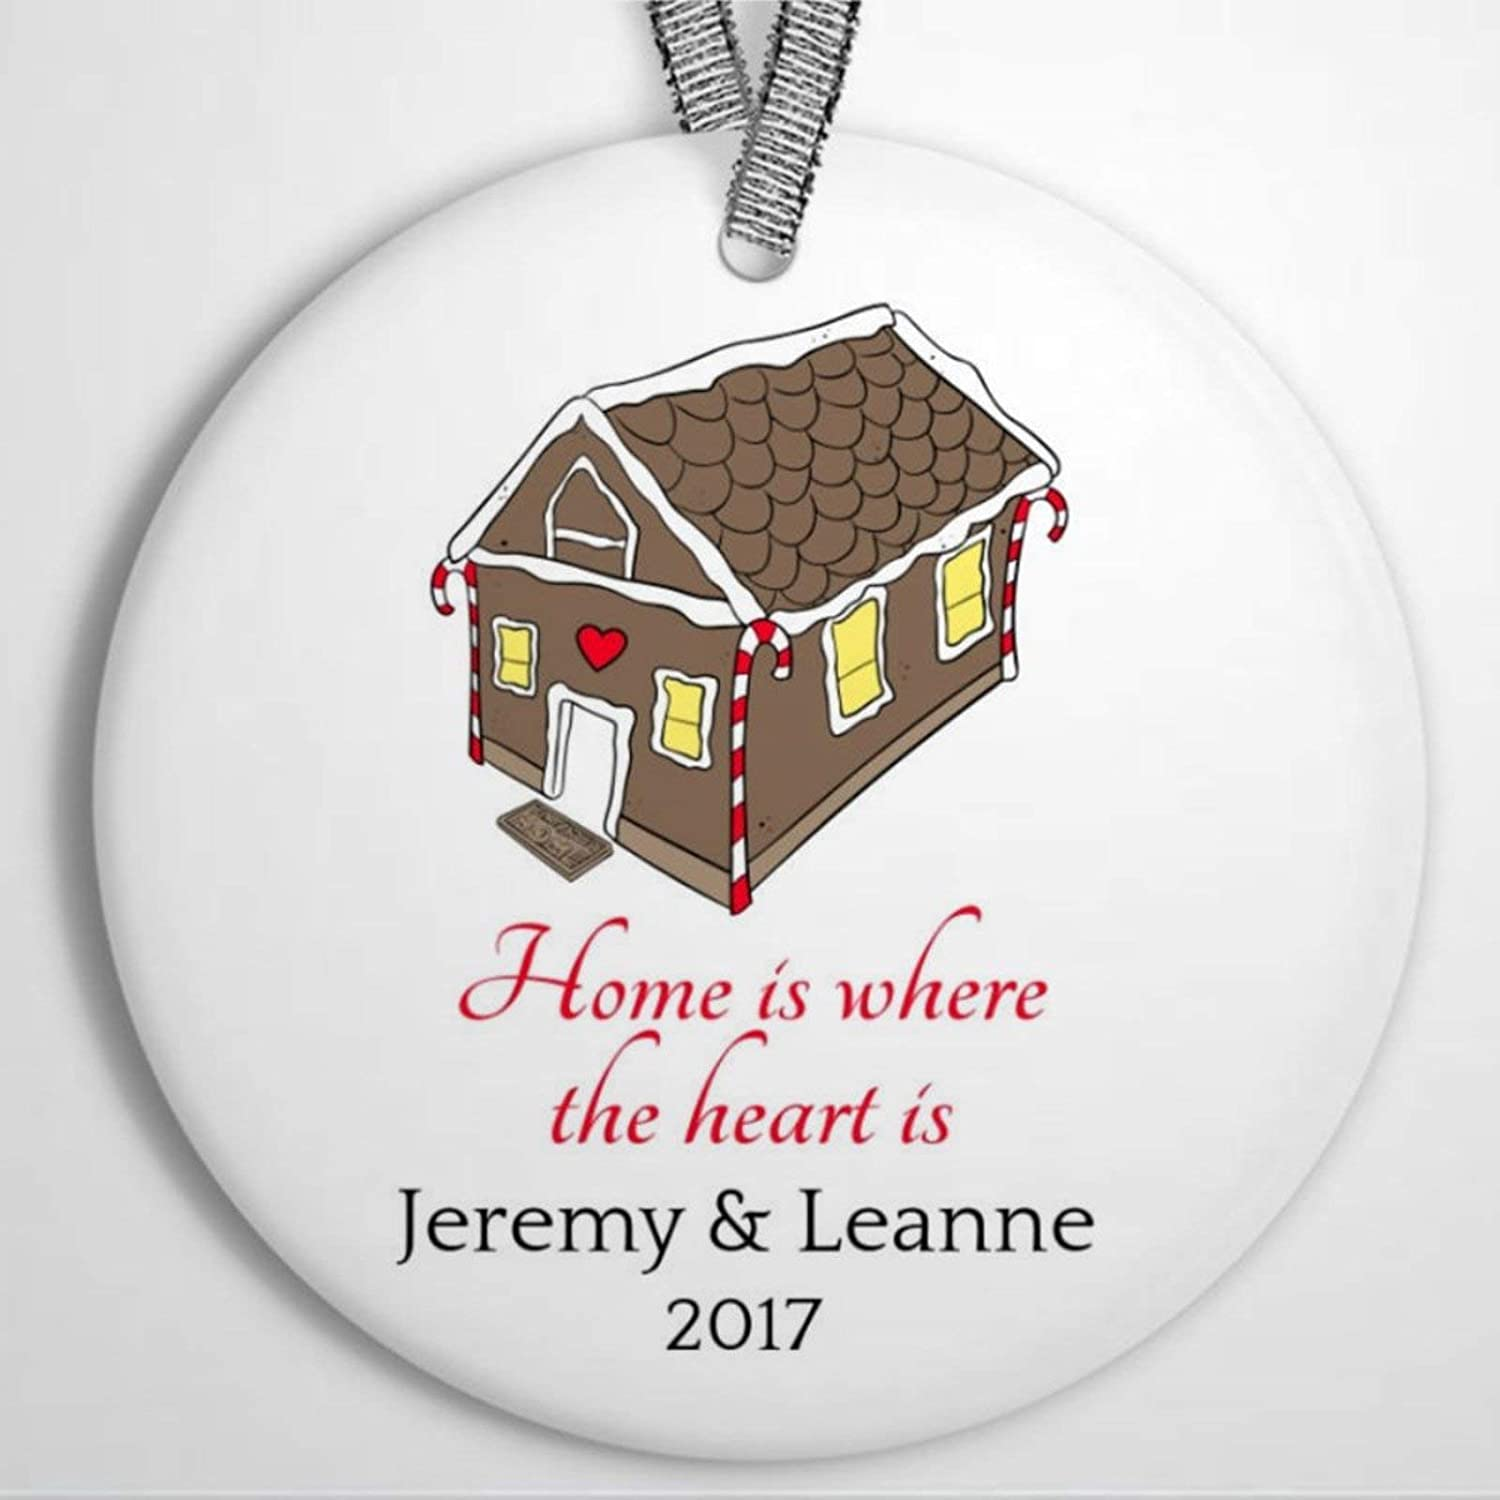 DONL9BAUER Home is Where The Heart Custom Christmas Ornament,House Love Holiday Ceramic Tree Hanging Keepsake Ornament Present for Family,Friends,Couple &Engagement Party.